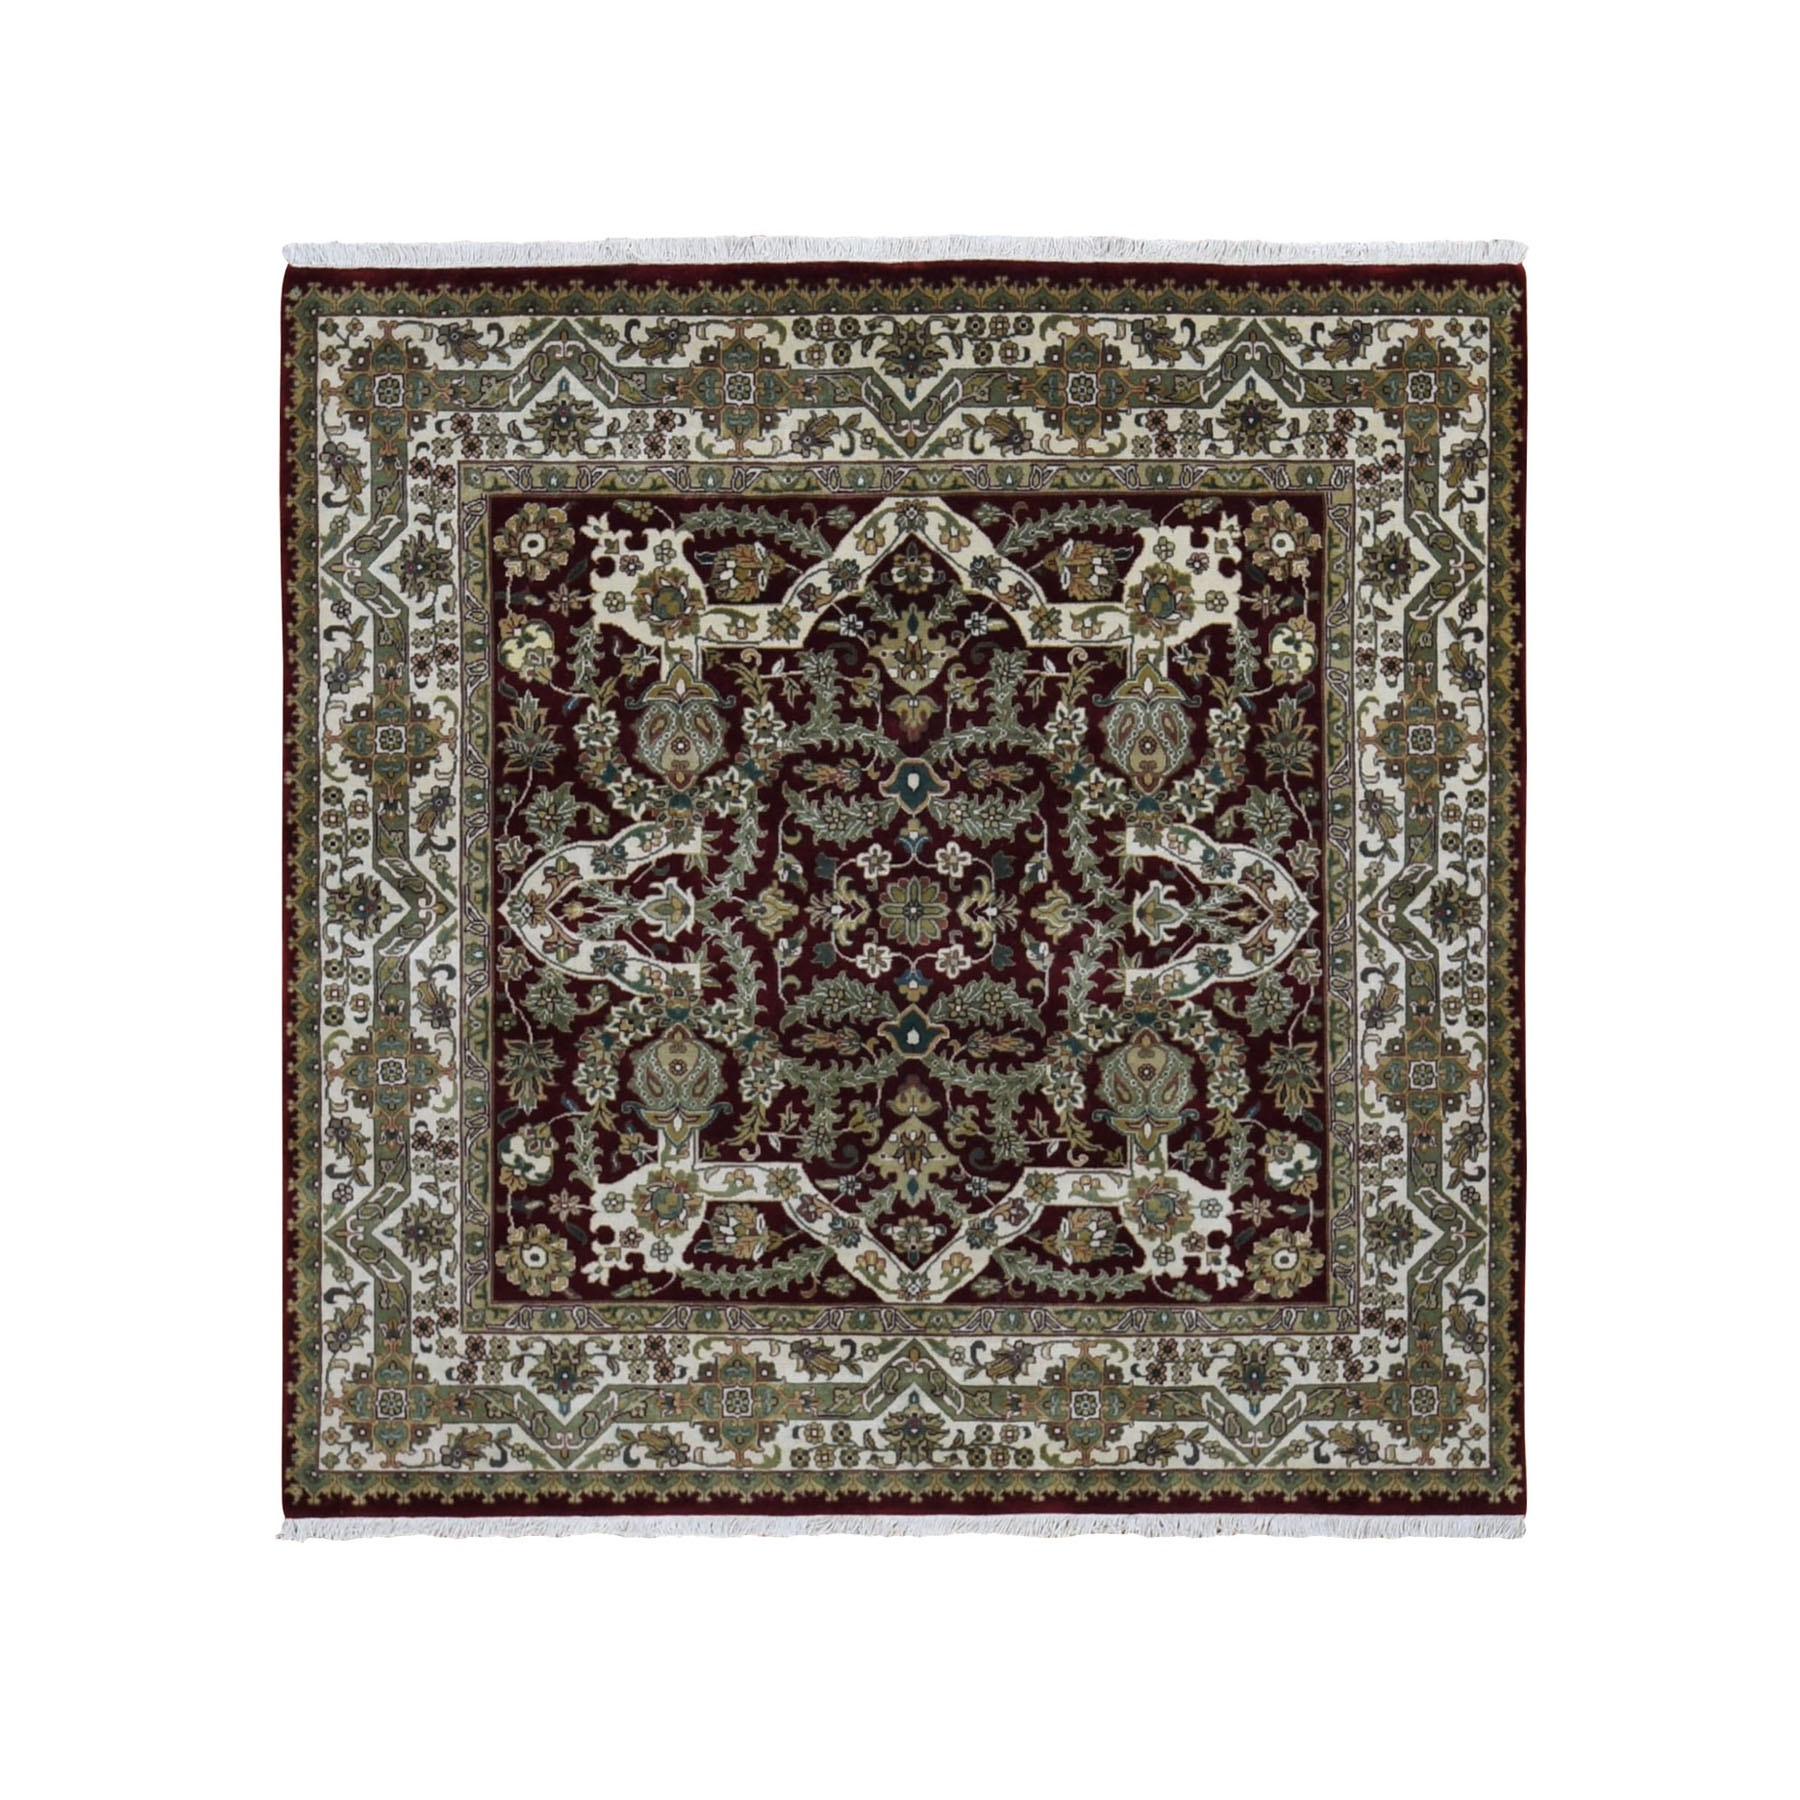 Pirniakan Collection Hand Knotted Red Rug No: 198148